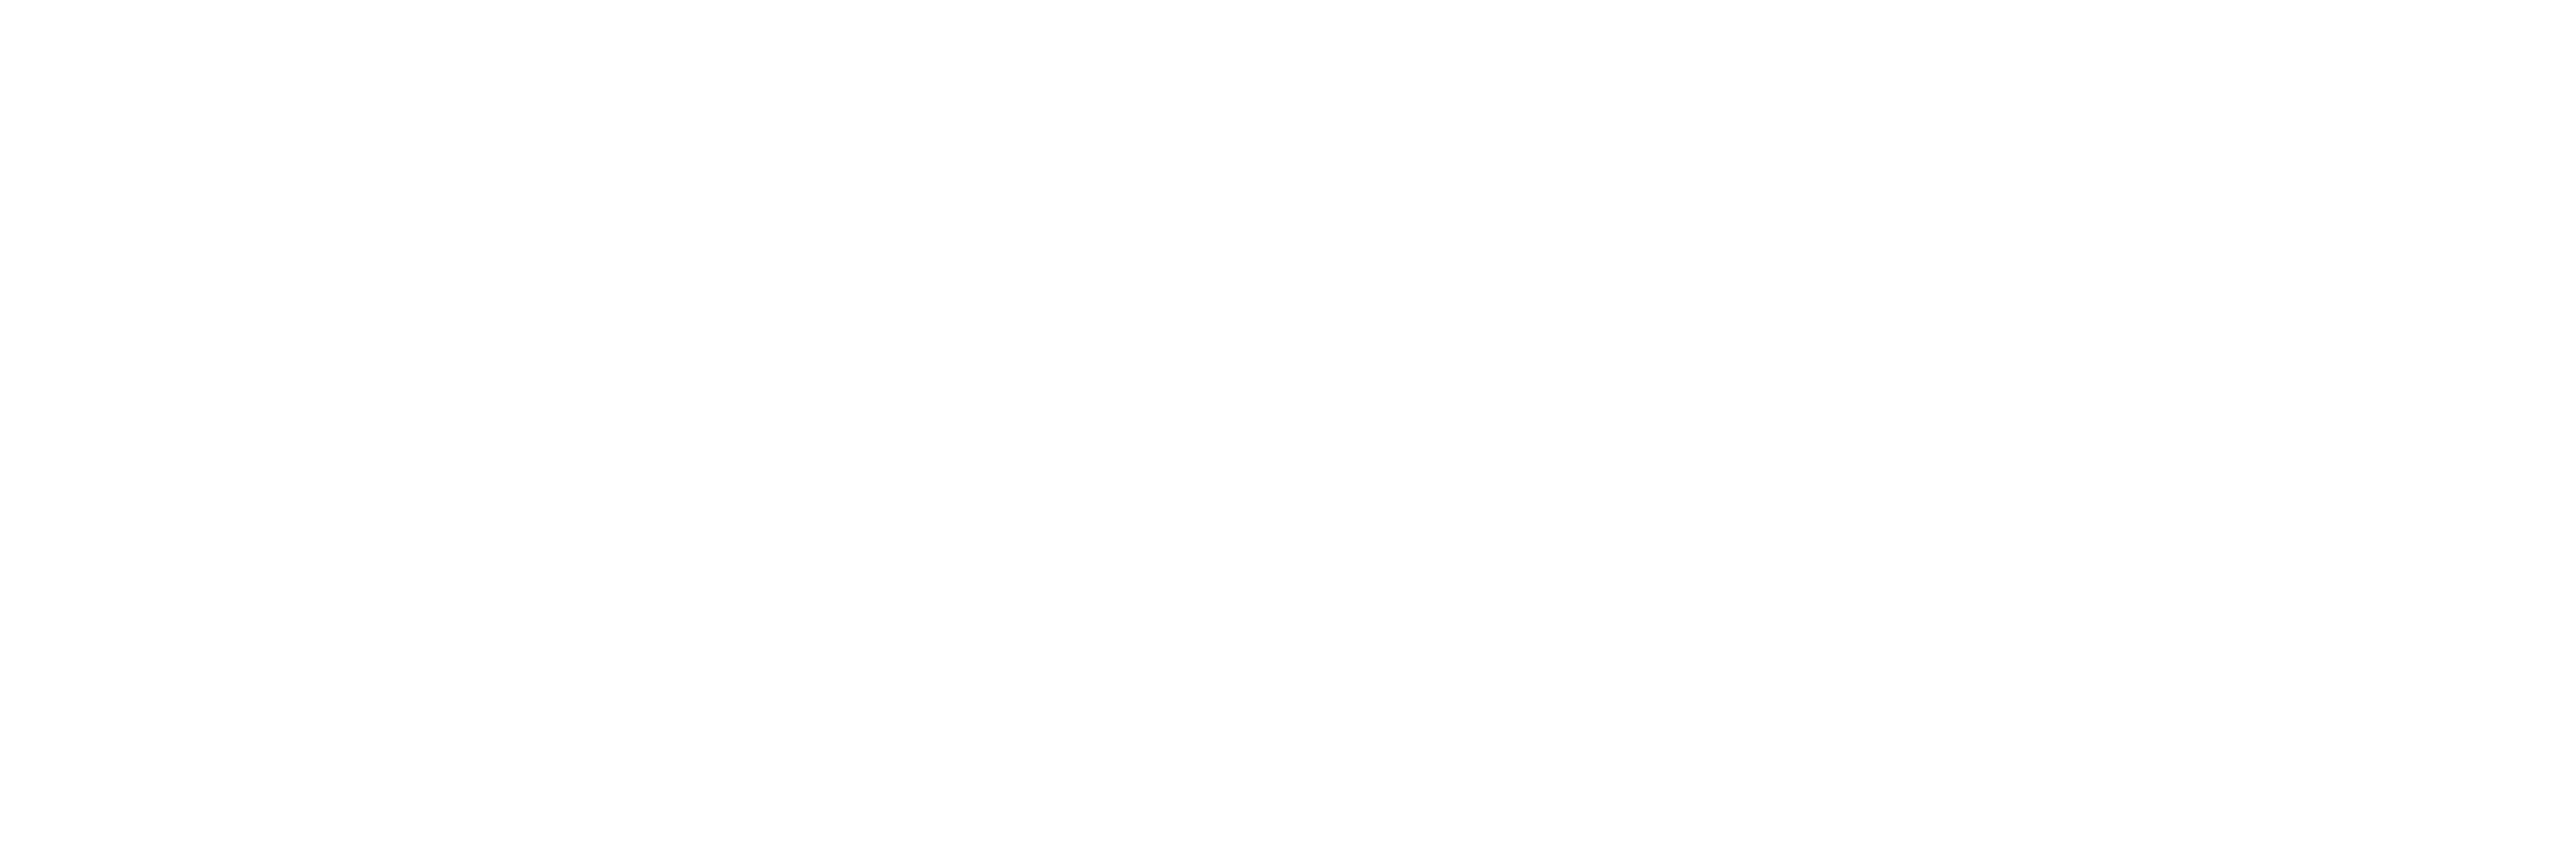 AVL Solutions Group